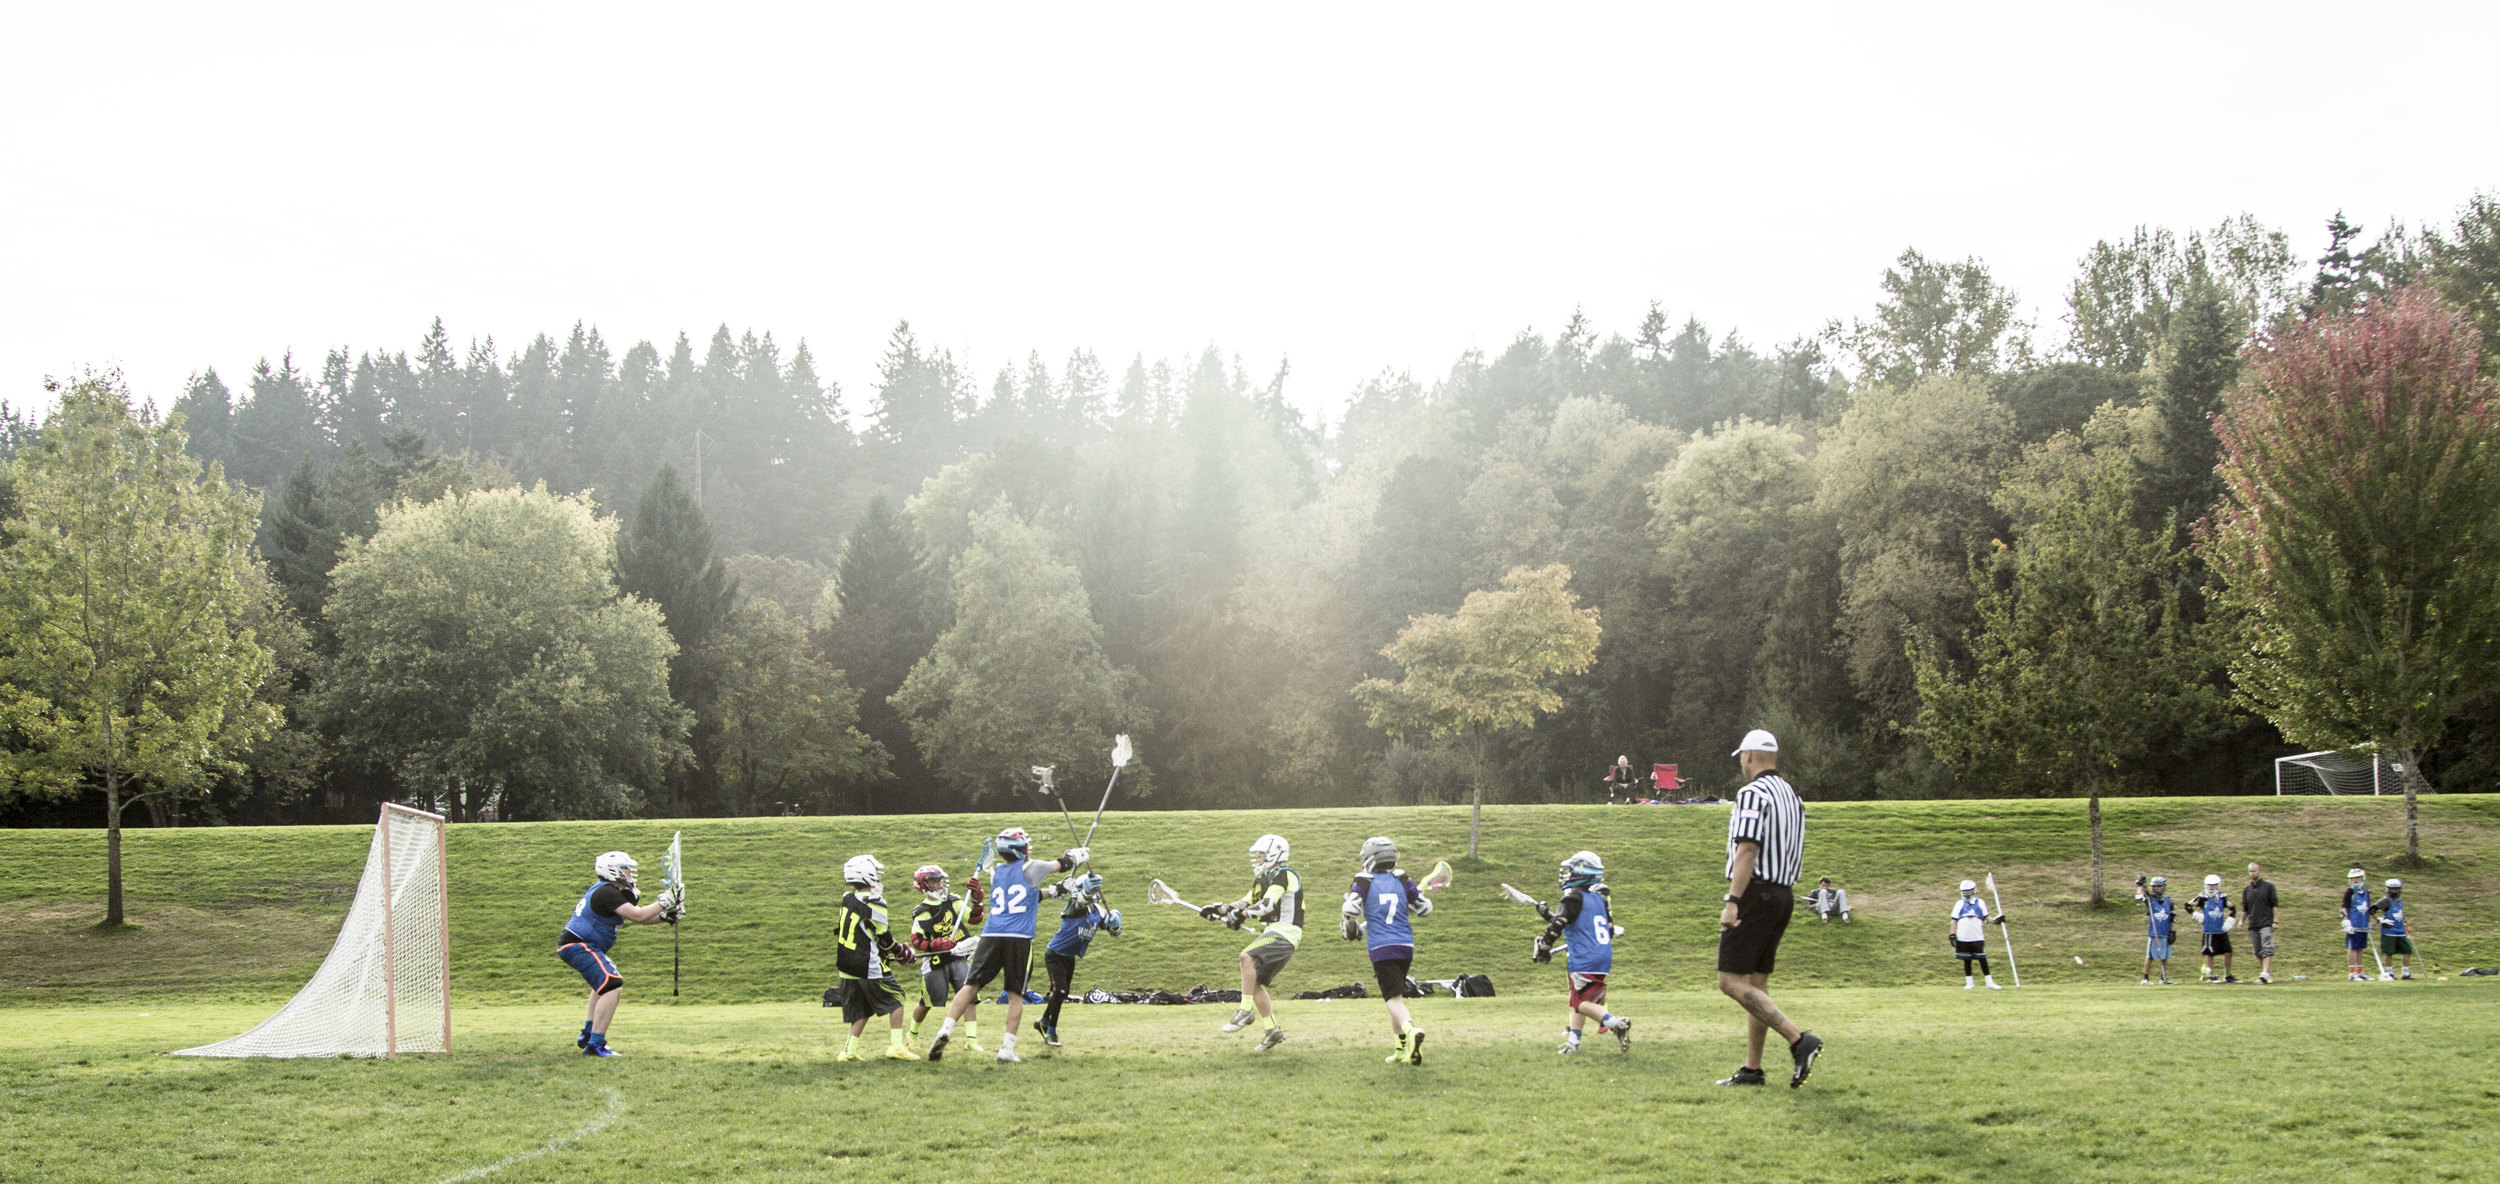 Kids-playing-in-field-Sunlight.jpg